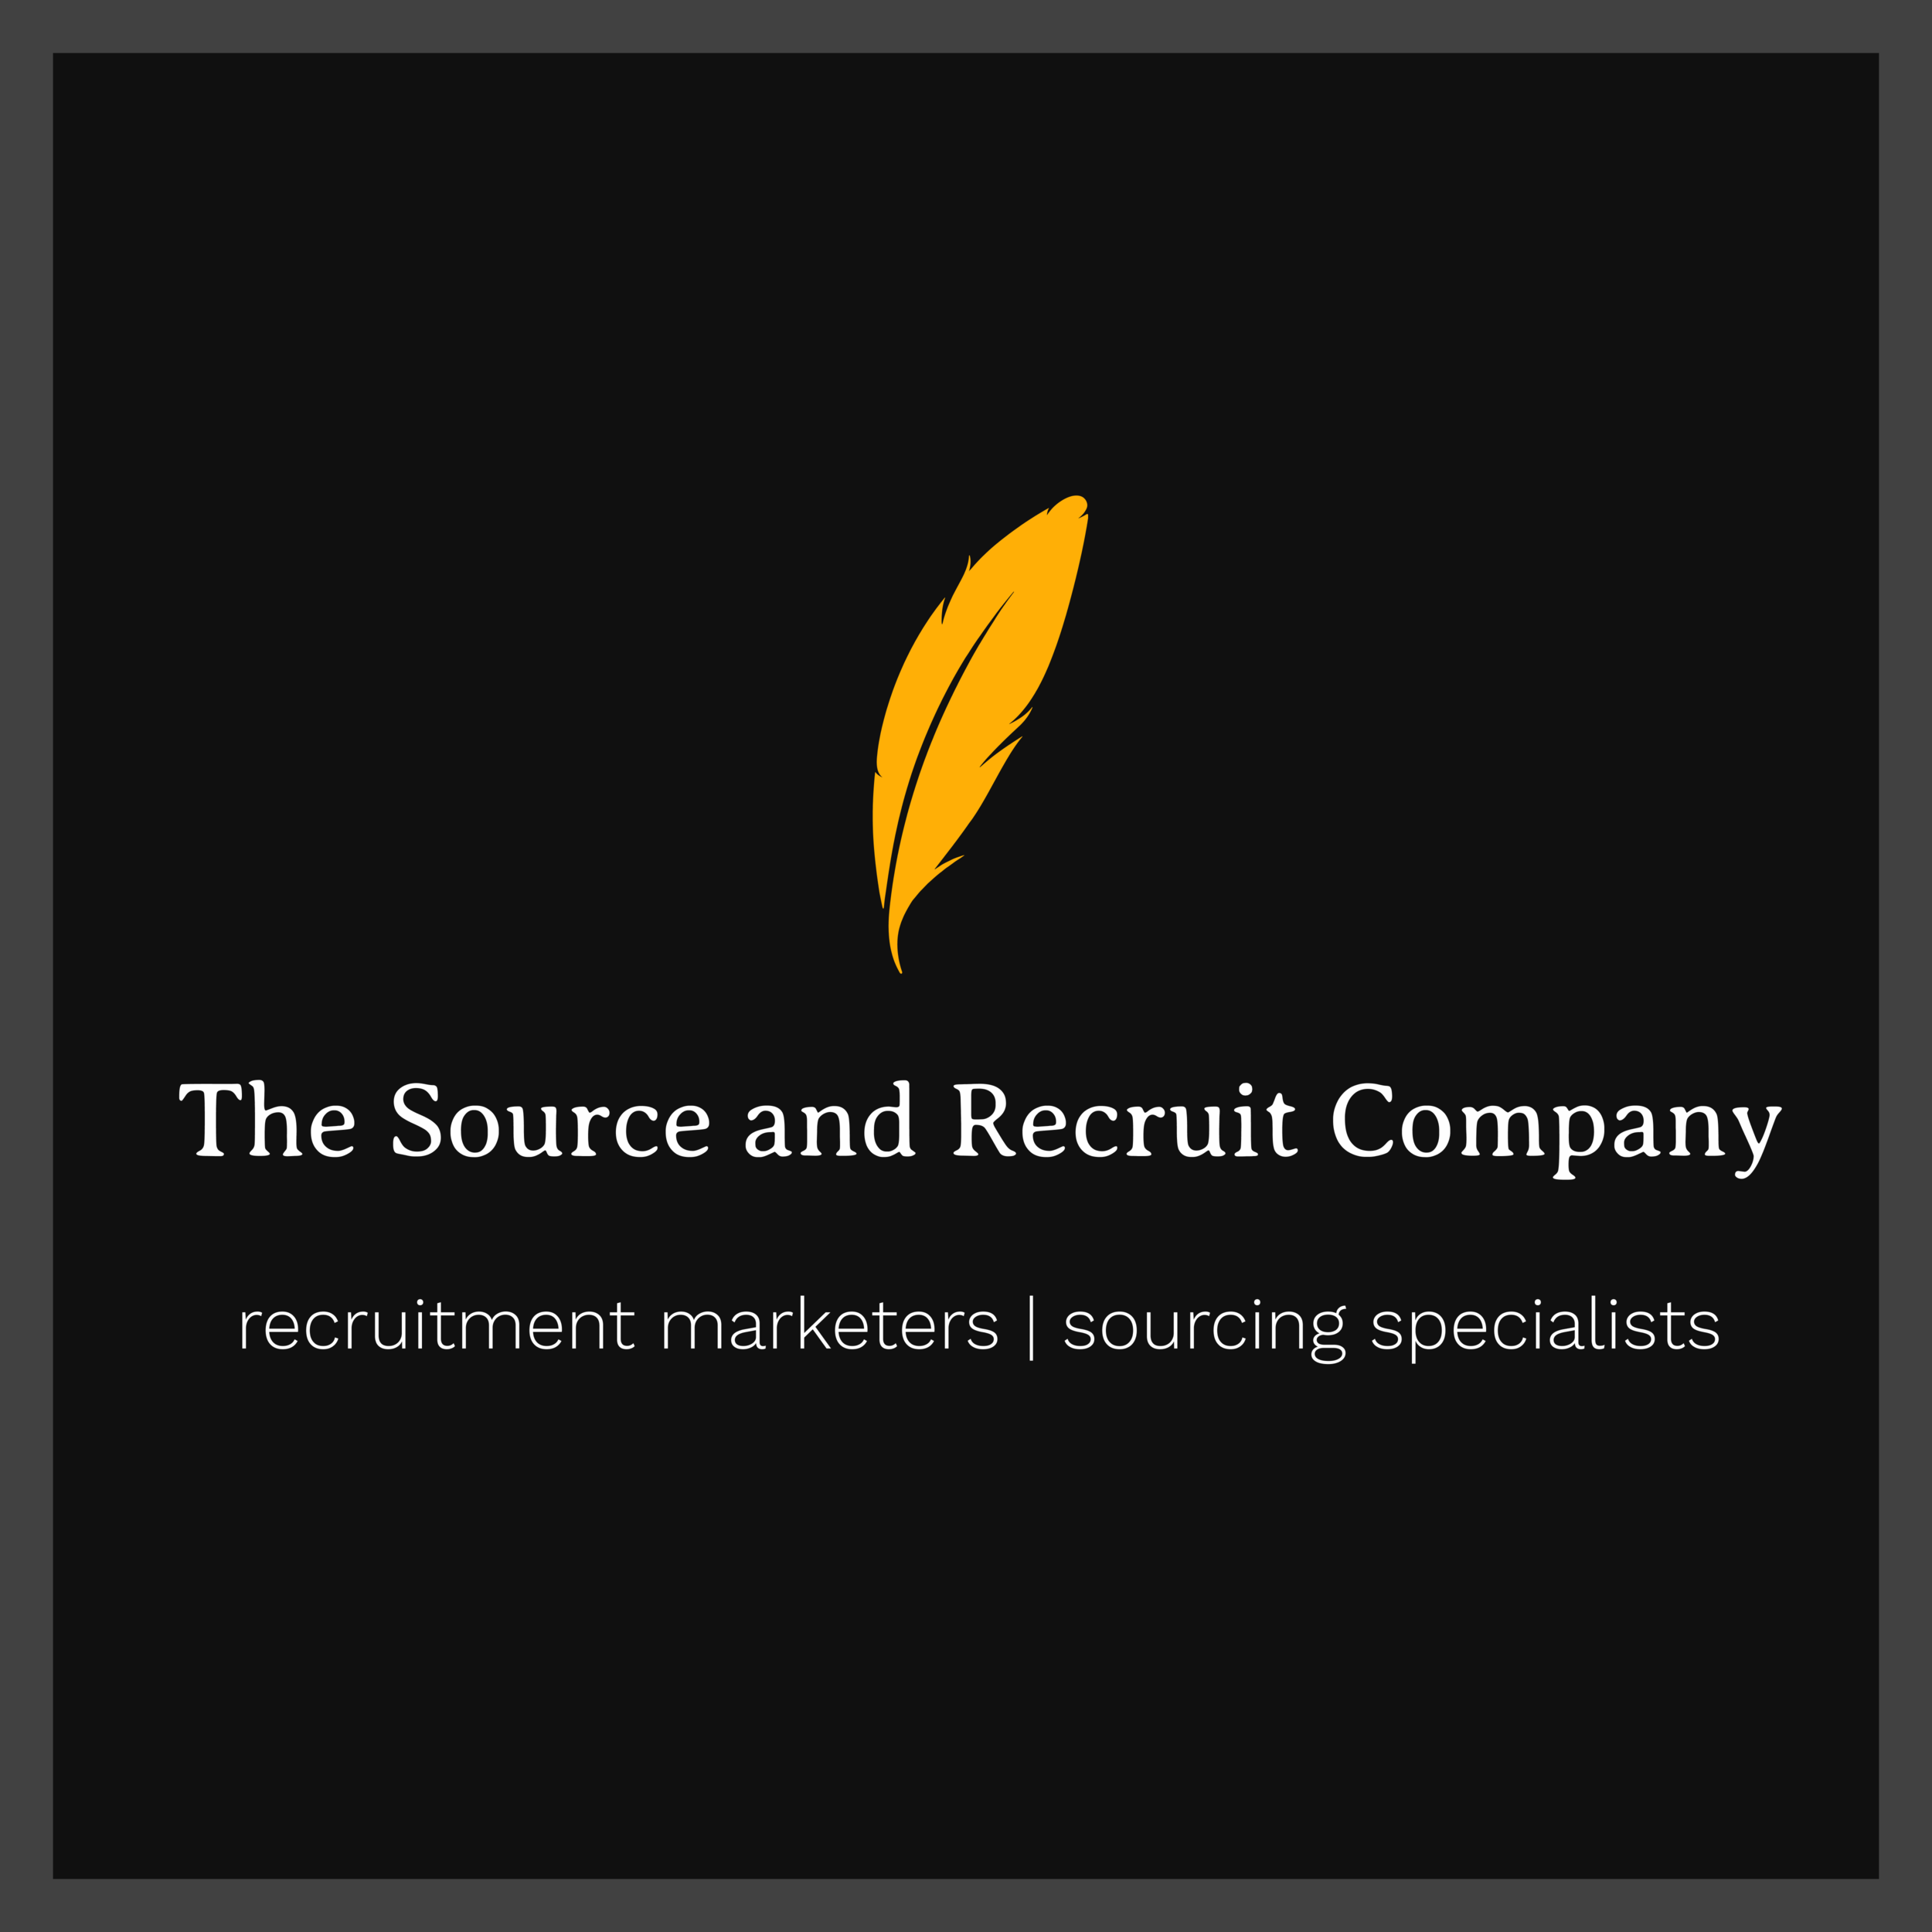 About The Source and Recruit Co. - Learn about our organization,our mission, our methods, and the results of our business practices.